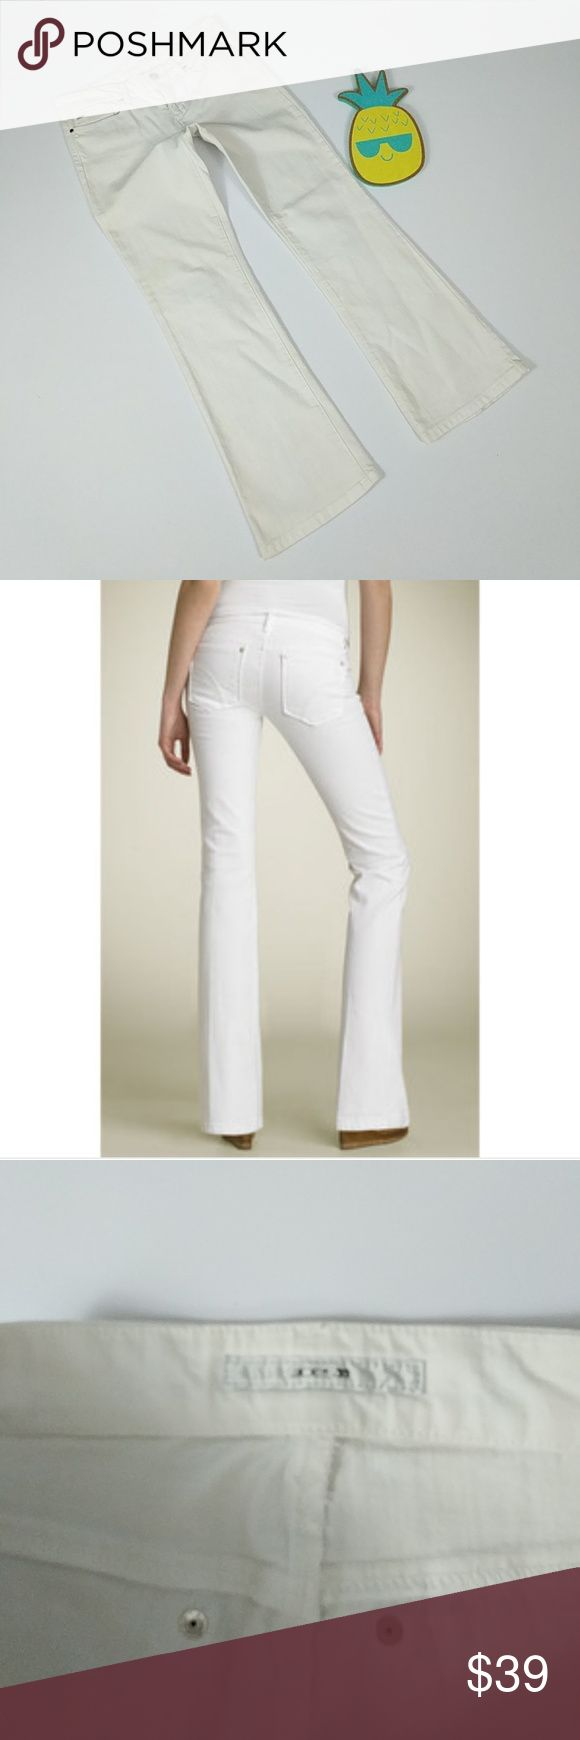 Joe's Jeans Stretchy Provocateur Bootcut Jeans Get ready for summer! White bootcut jeans from Joe's in a mid-rise petite fit. Laying flat and unstreched, jeans measure approximately 16 inches across the waist, 8 inch rise, and 29.5 inch inseam. Joe's Jeans Jeans Boot Cut